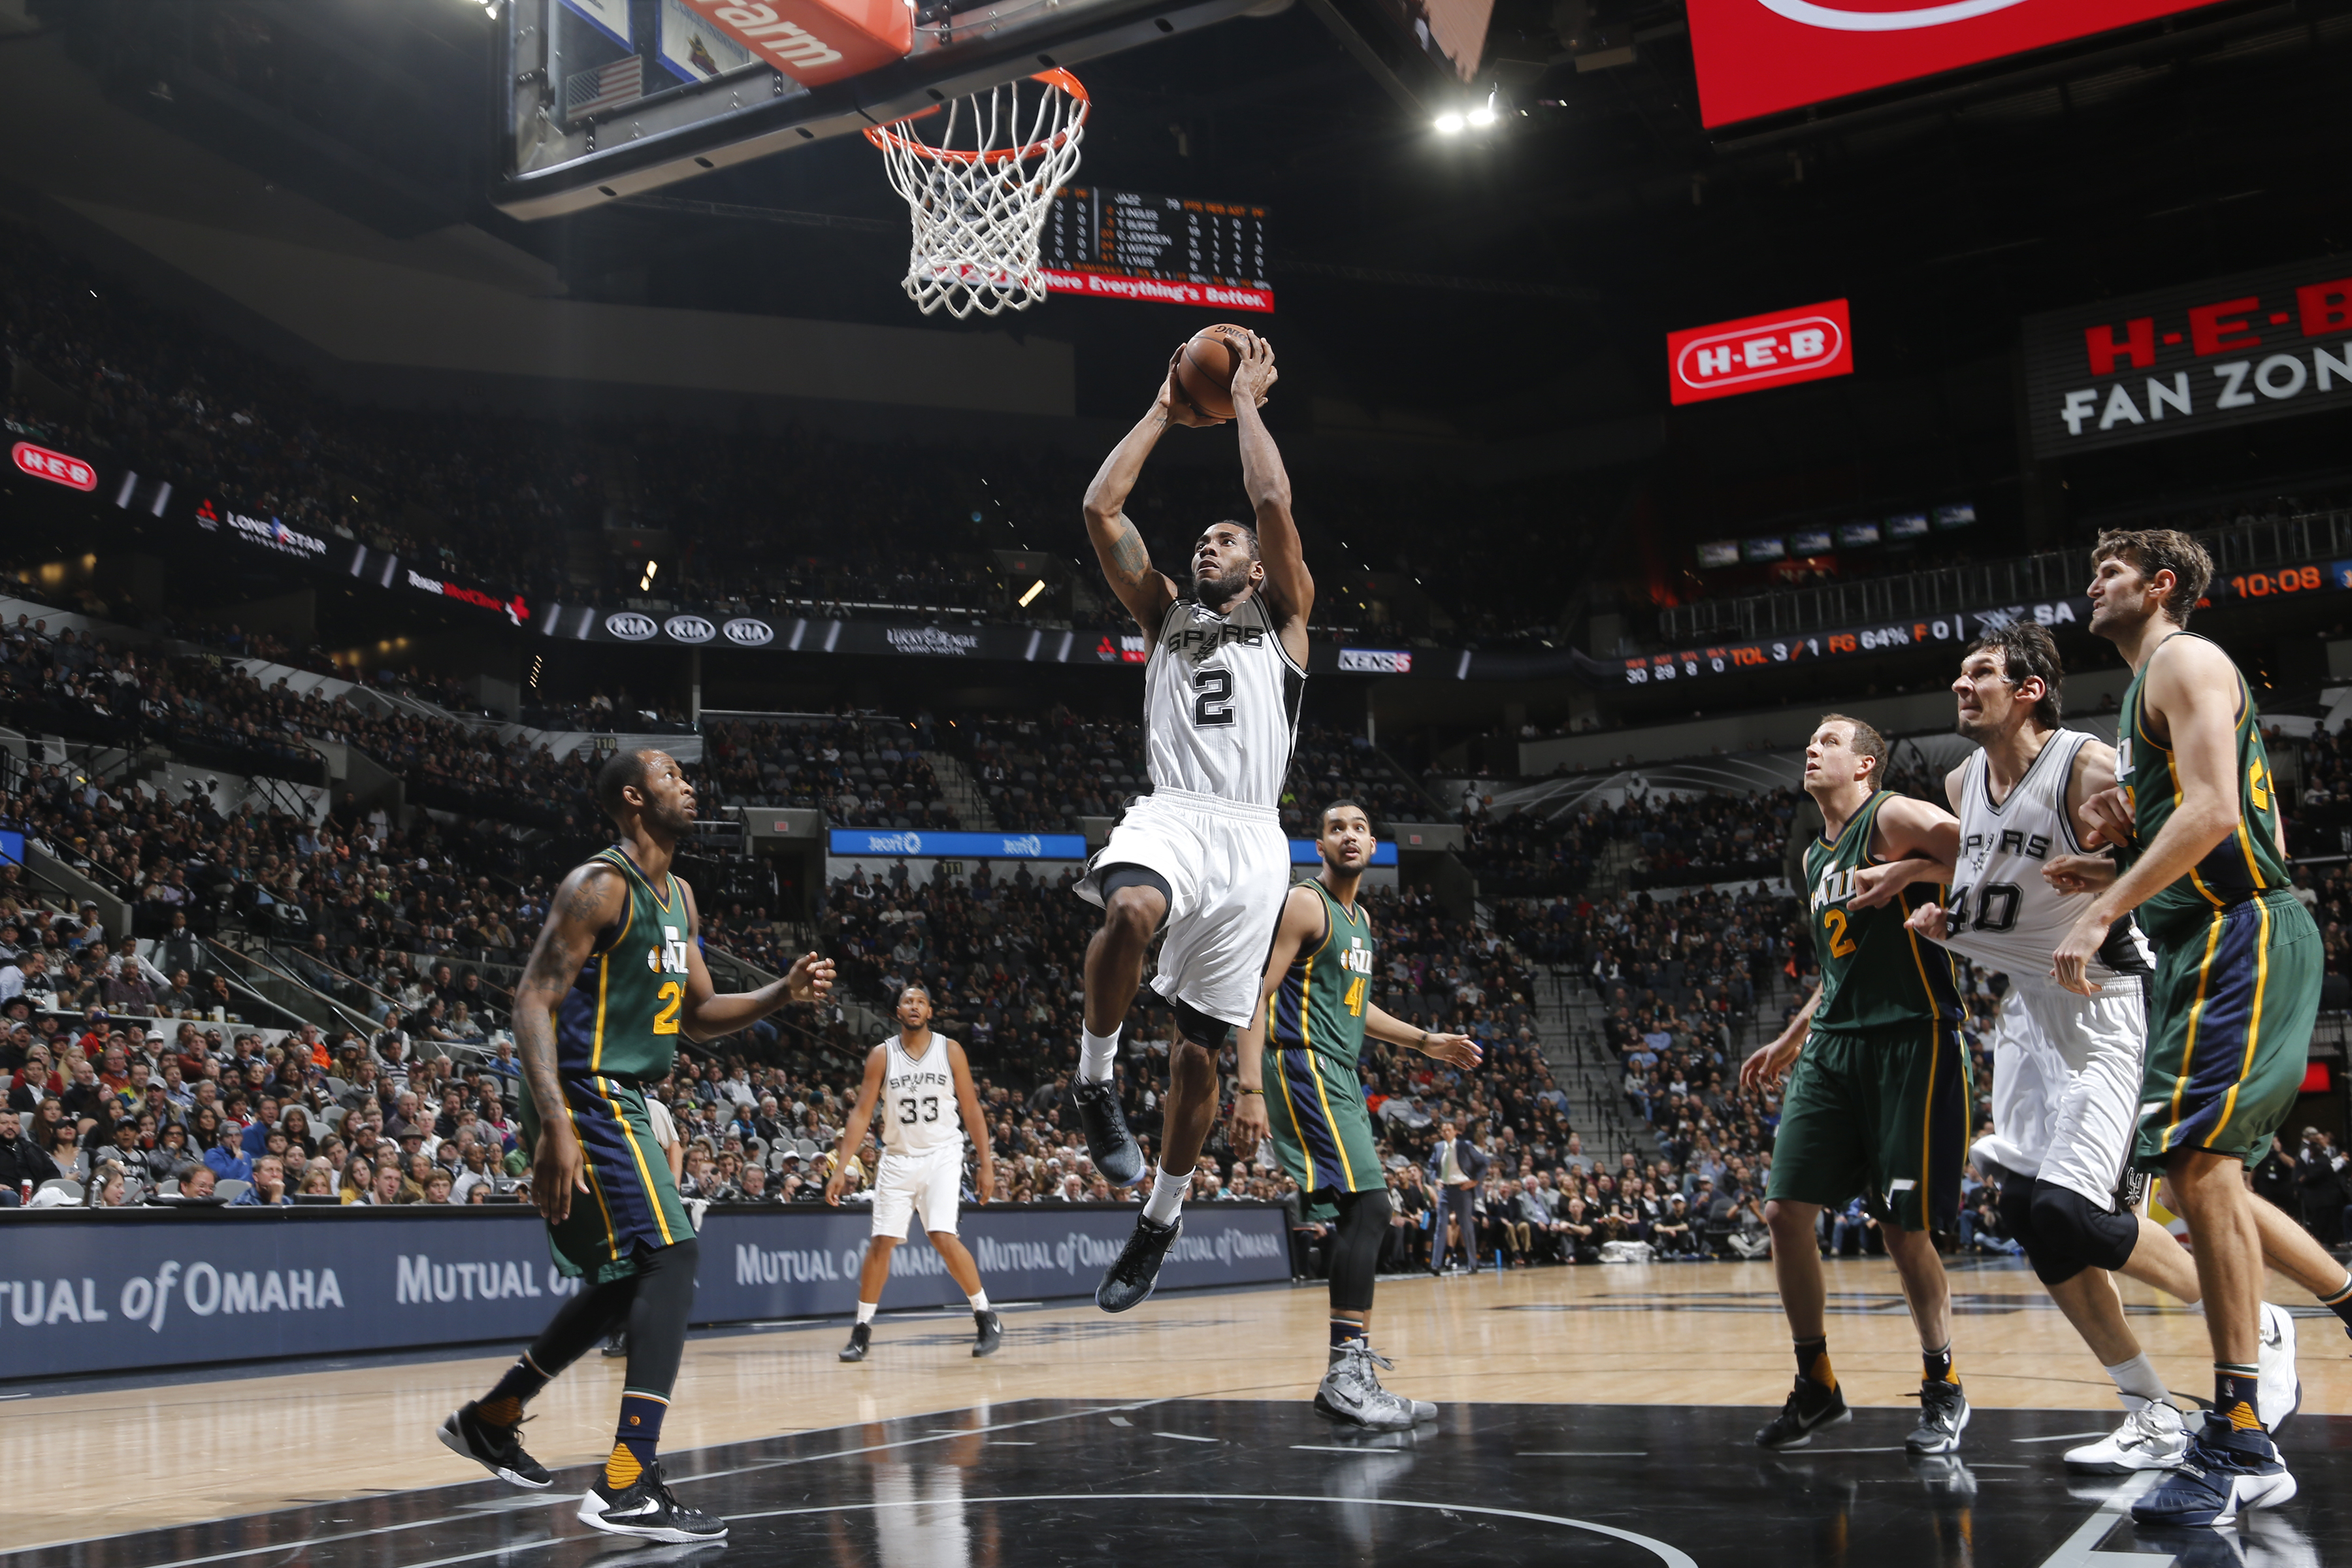 SAN ANTONIO, TX - JANUARY 6:  Kawhi Leonard #2 of the San Antonio Spurs goes up for a dunk against the Utah Jazz on January 6, 2016 at the AT&T Center in San Antonio, Texas.